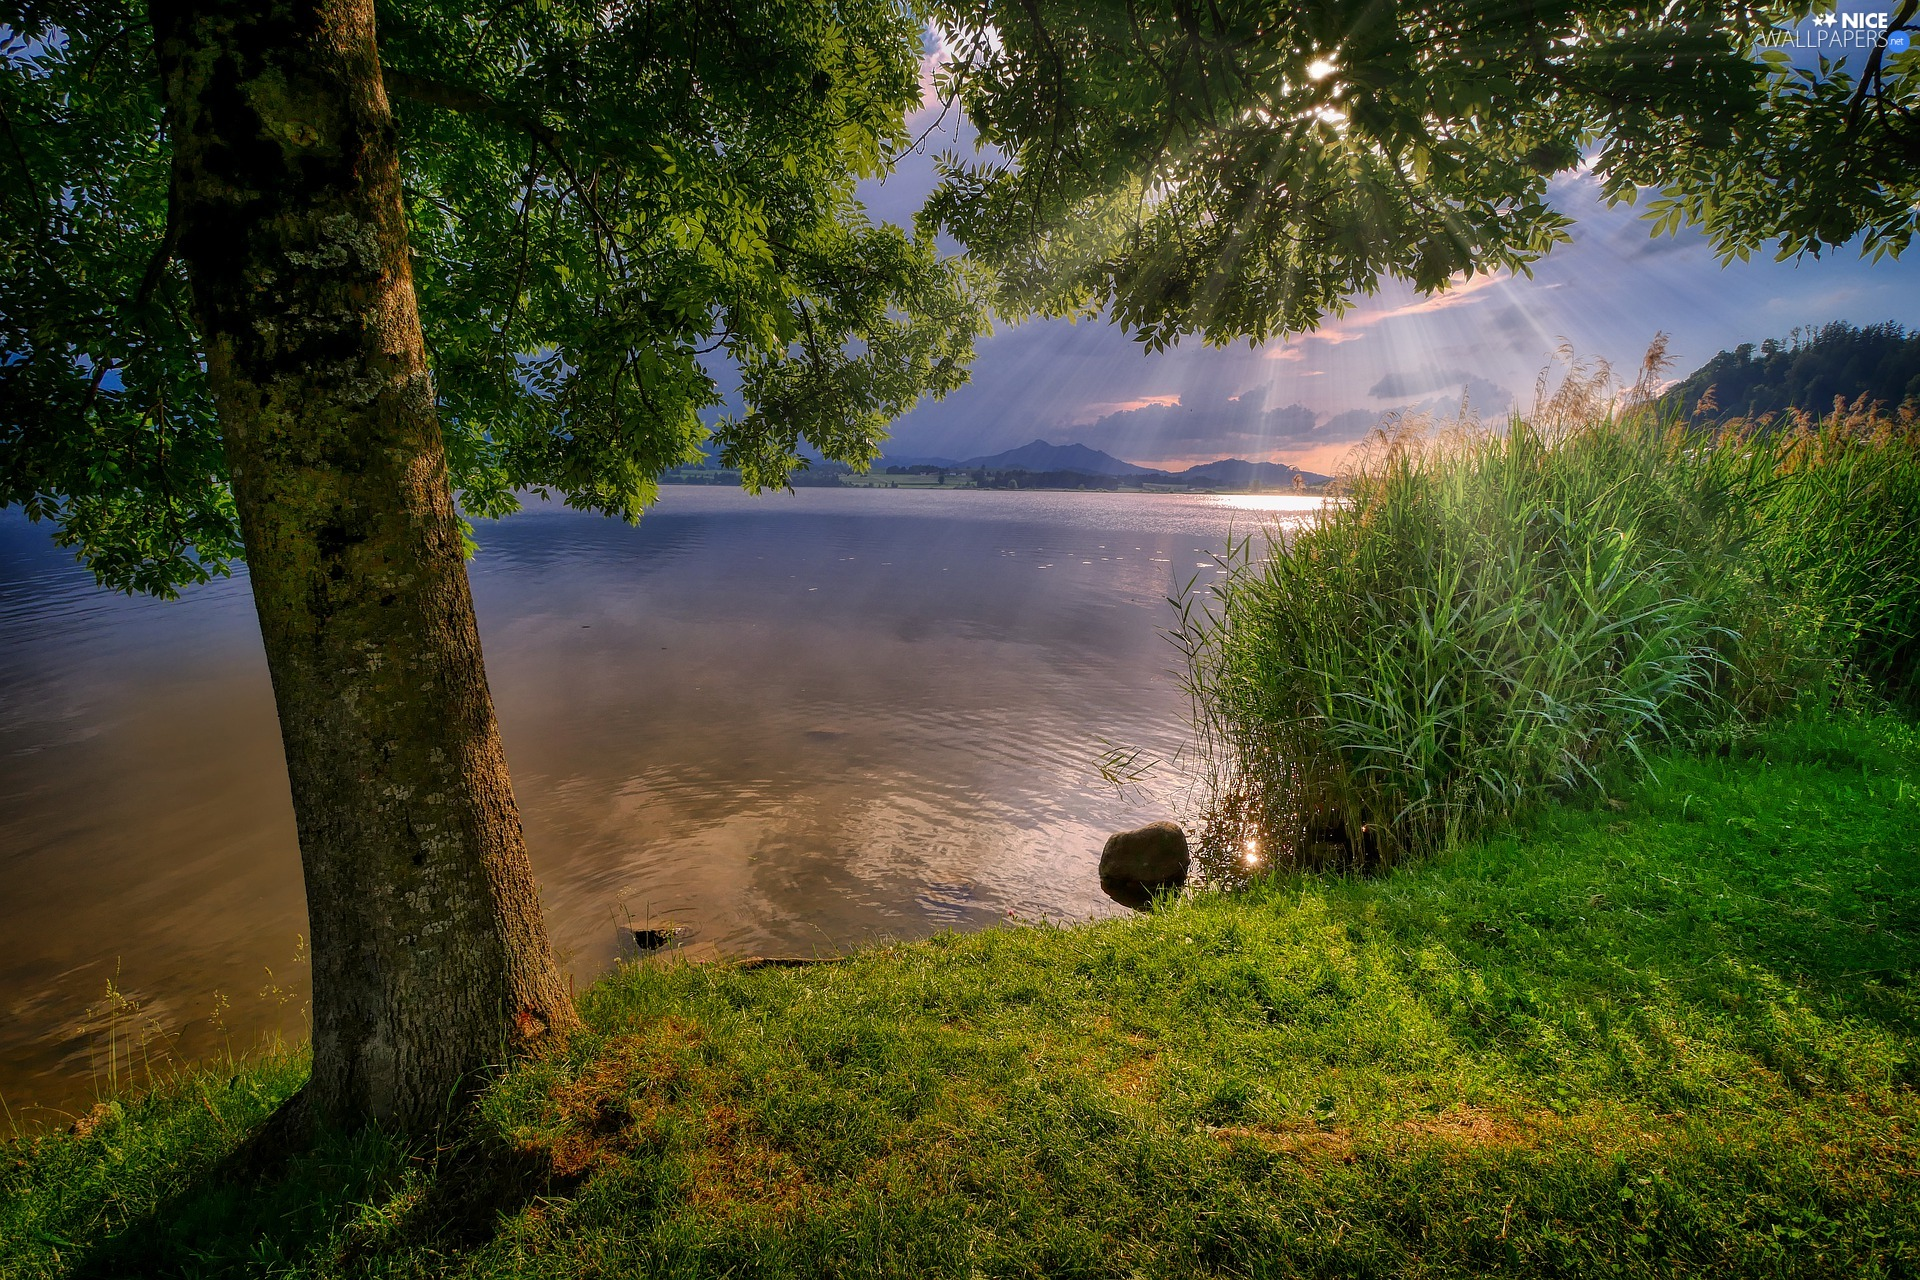 rushes, coast, rays of the Sun, trees, lake, grass, evening